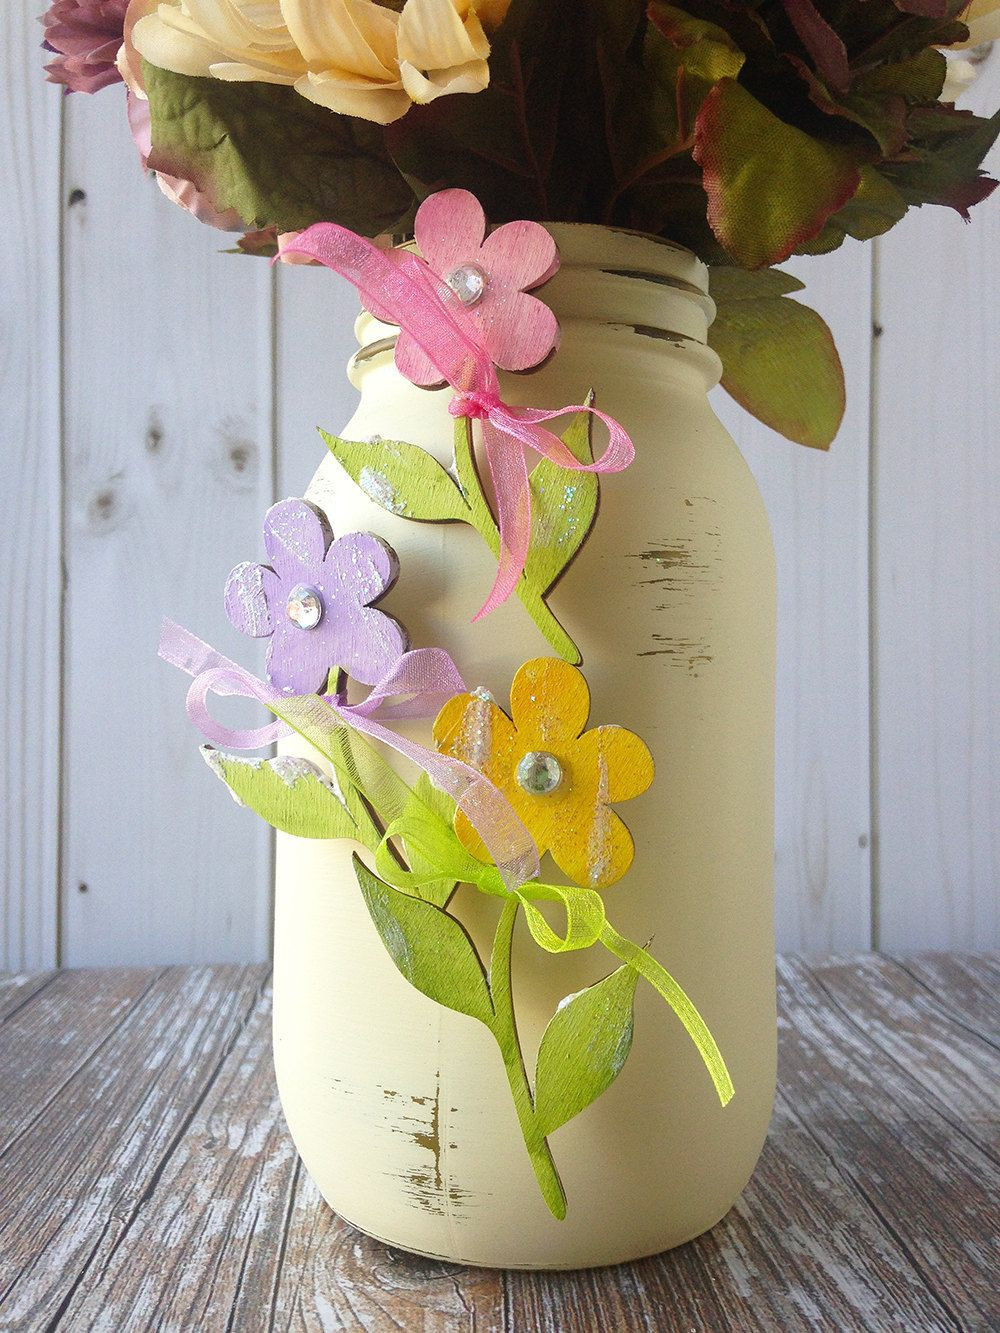 daisies in a vase of wood and glass vase photograph wooden daisy charms mason jar decor inside wood and glass vase photograph wooden daisy charms mason jar decor set of 3 colorful flowers